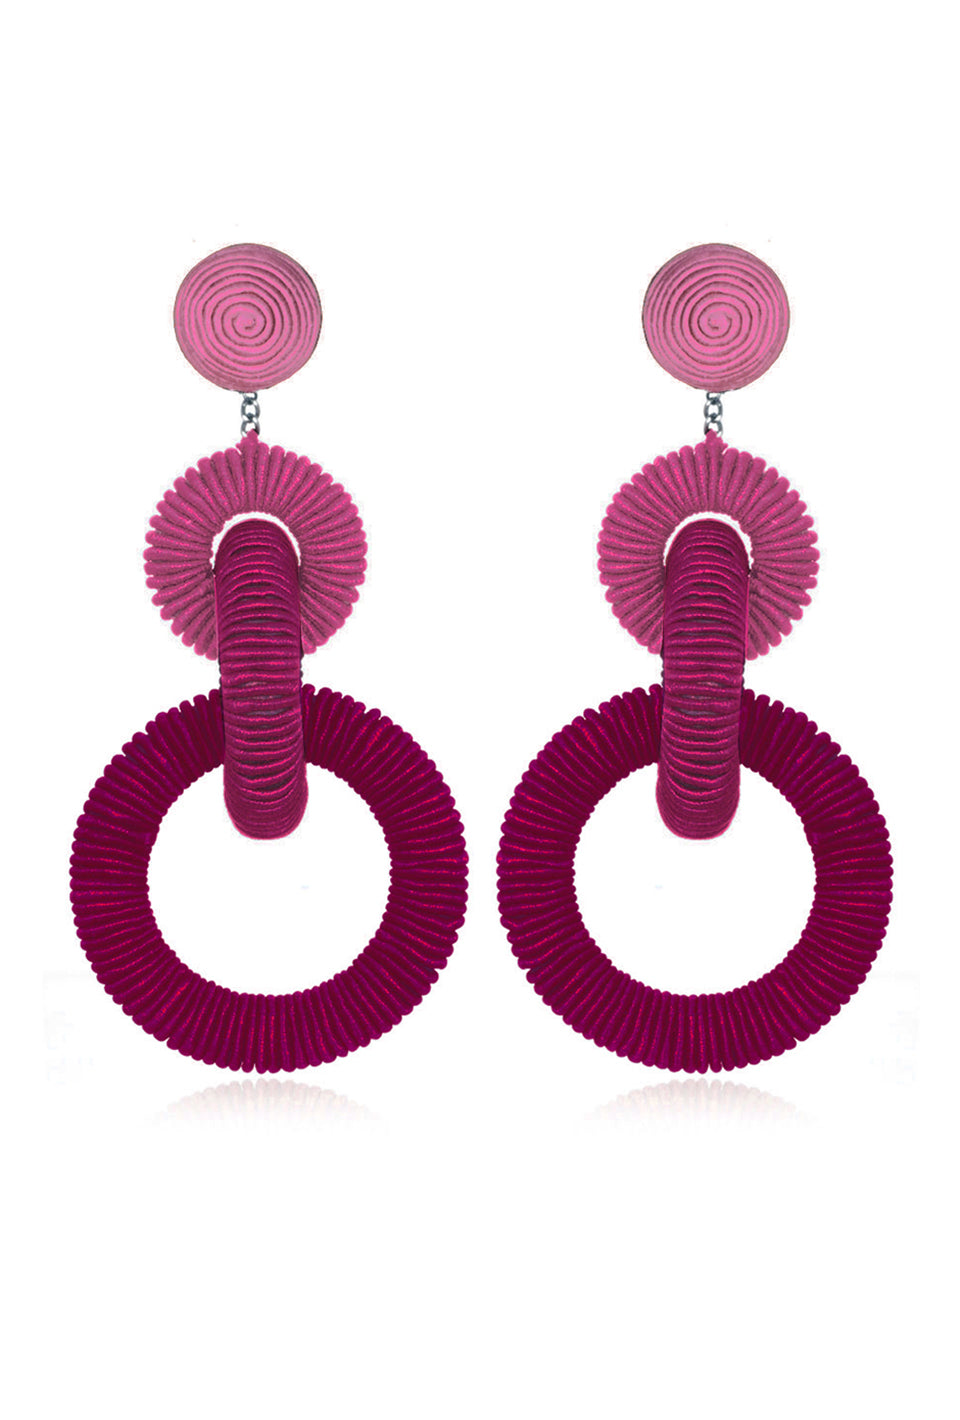 Corded Hoop Earring - Berry Ombre